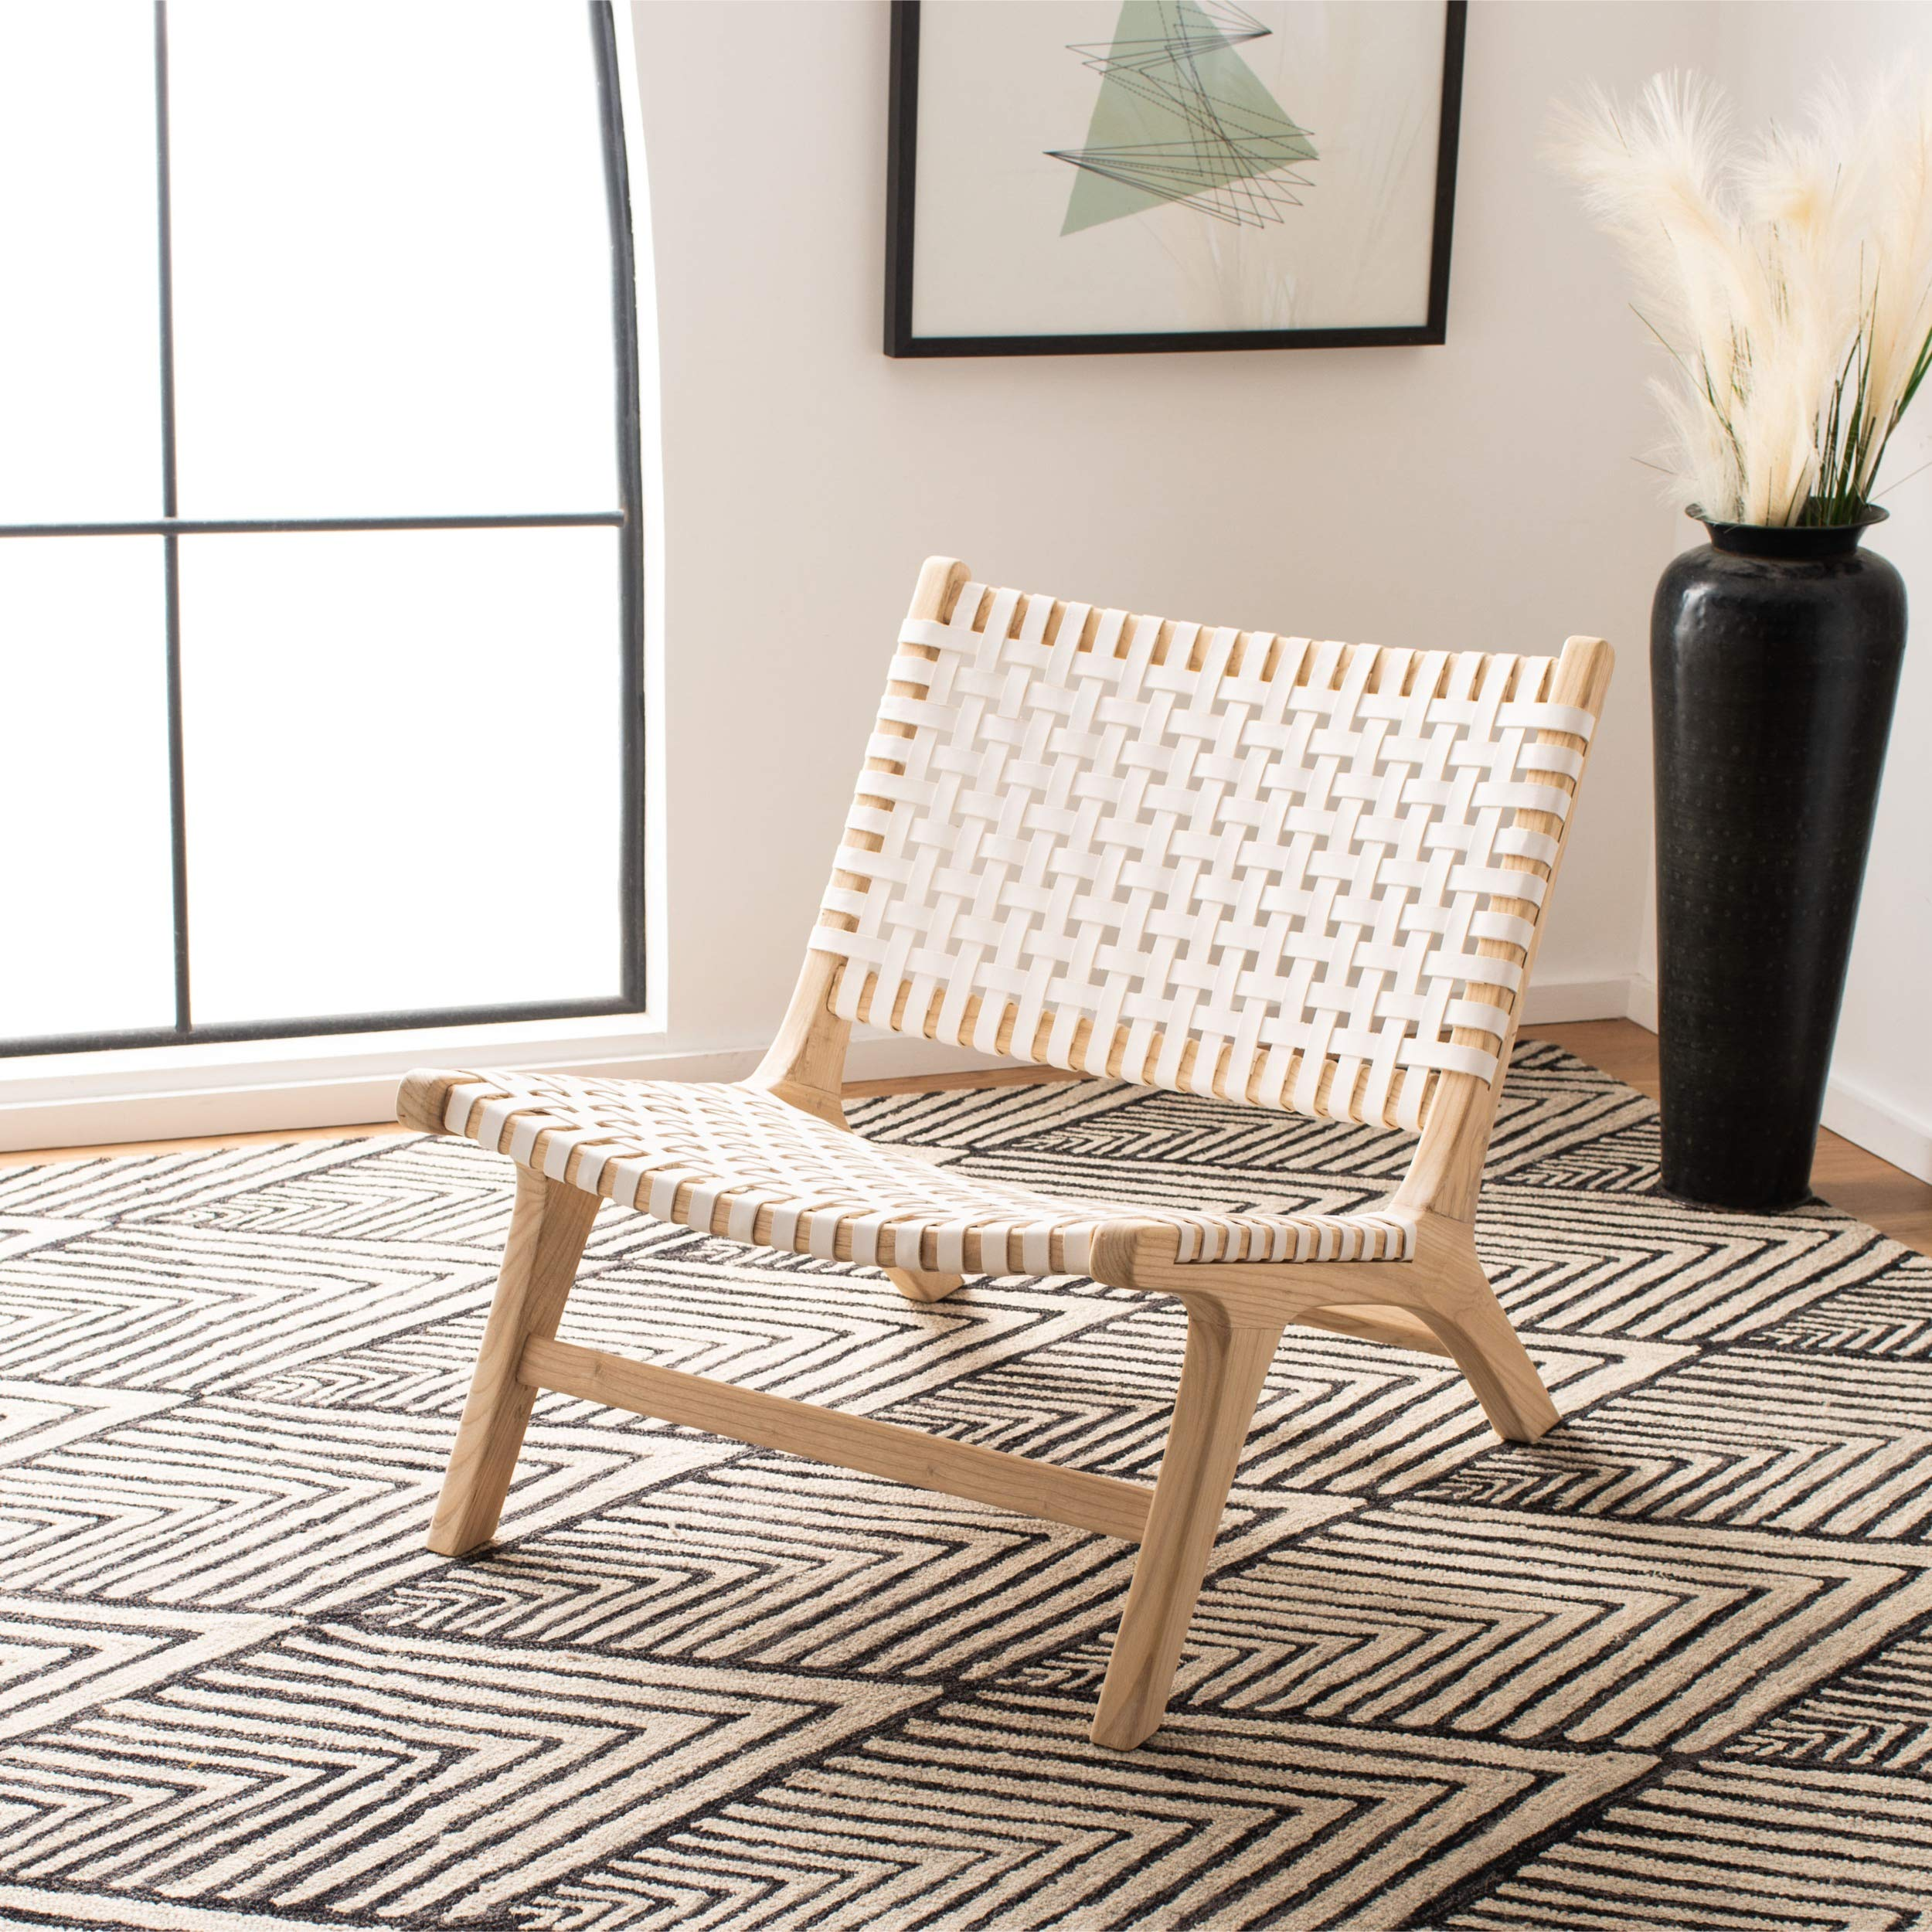 Safavieh Home Luna Natural and White Leather Woven Accent Chair, by Safavieh